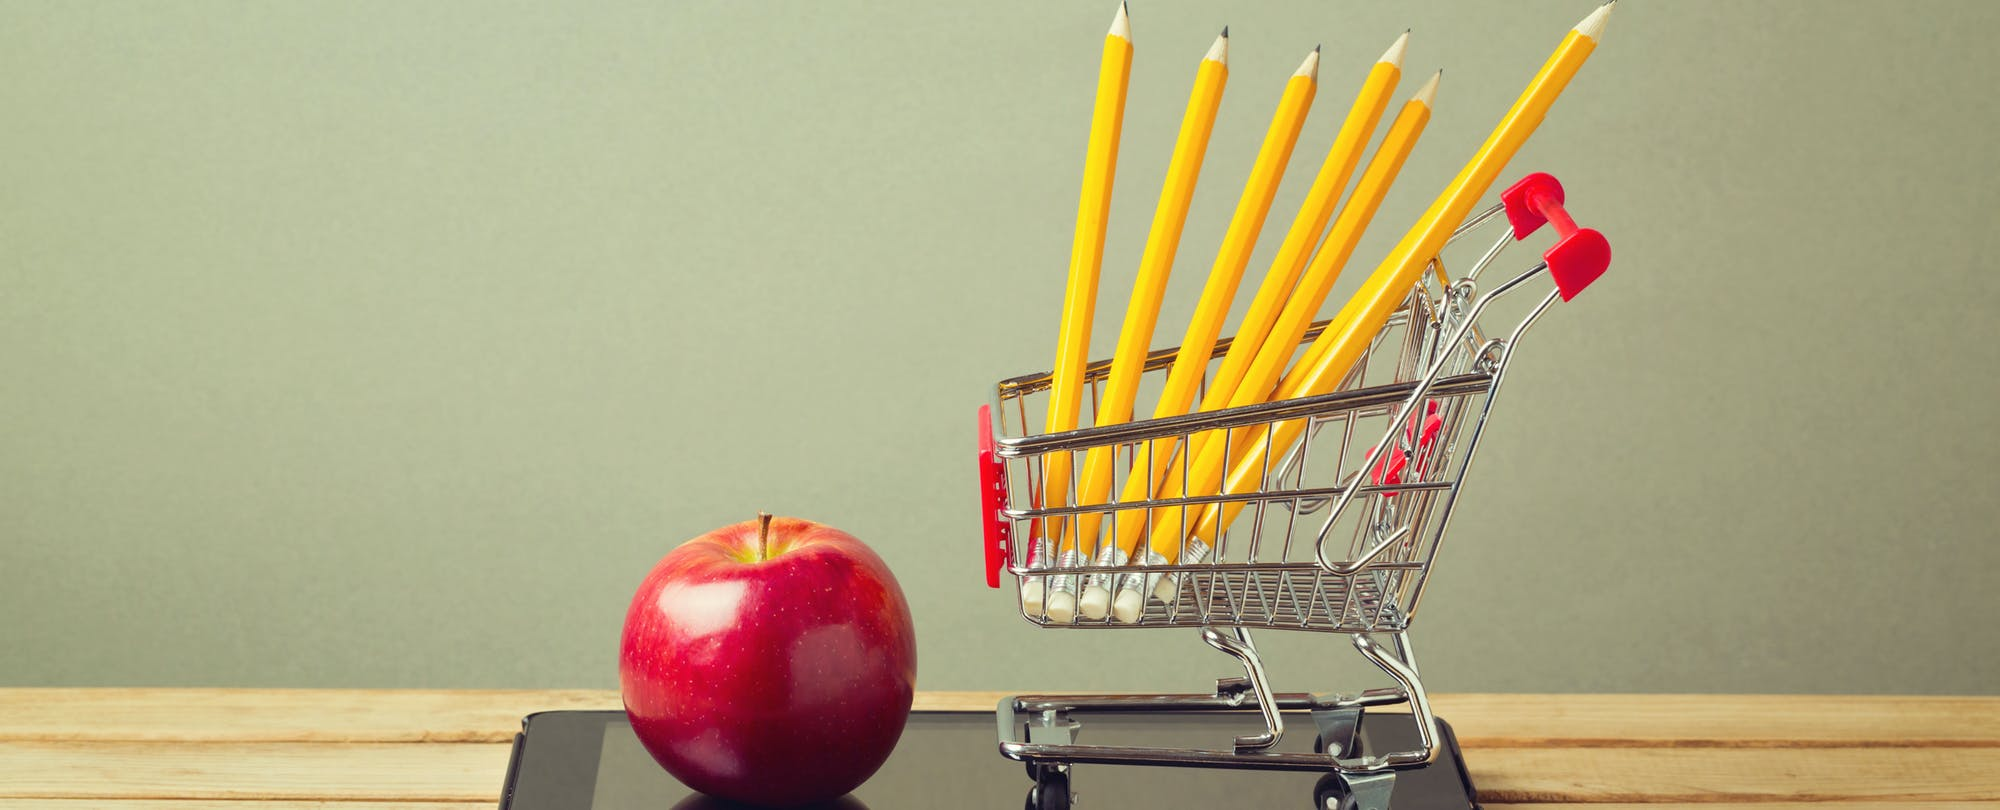 With $150 Million to Spend, Hero K12 Goes Shopping for Education Technology Companies